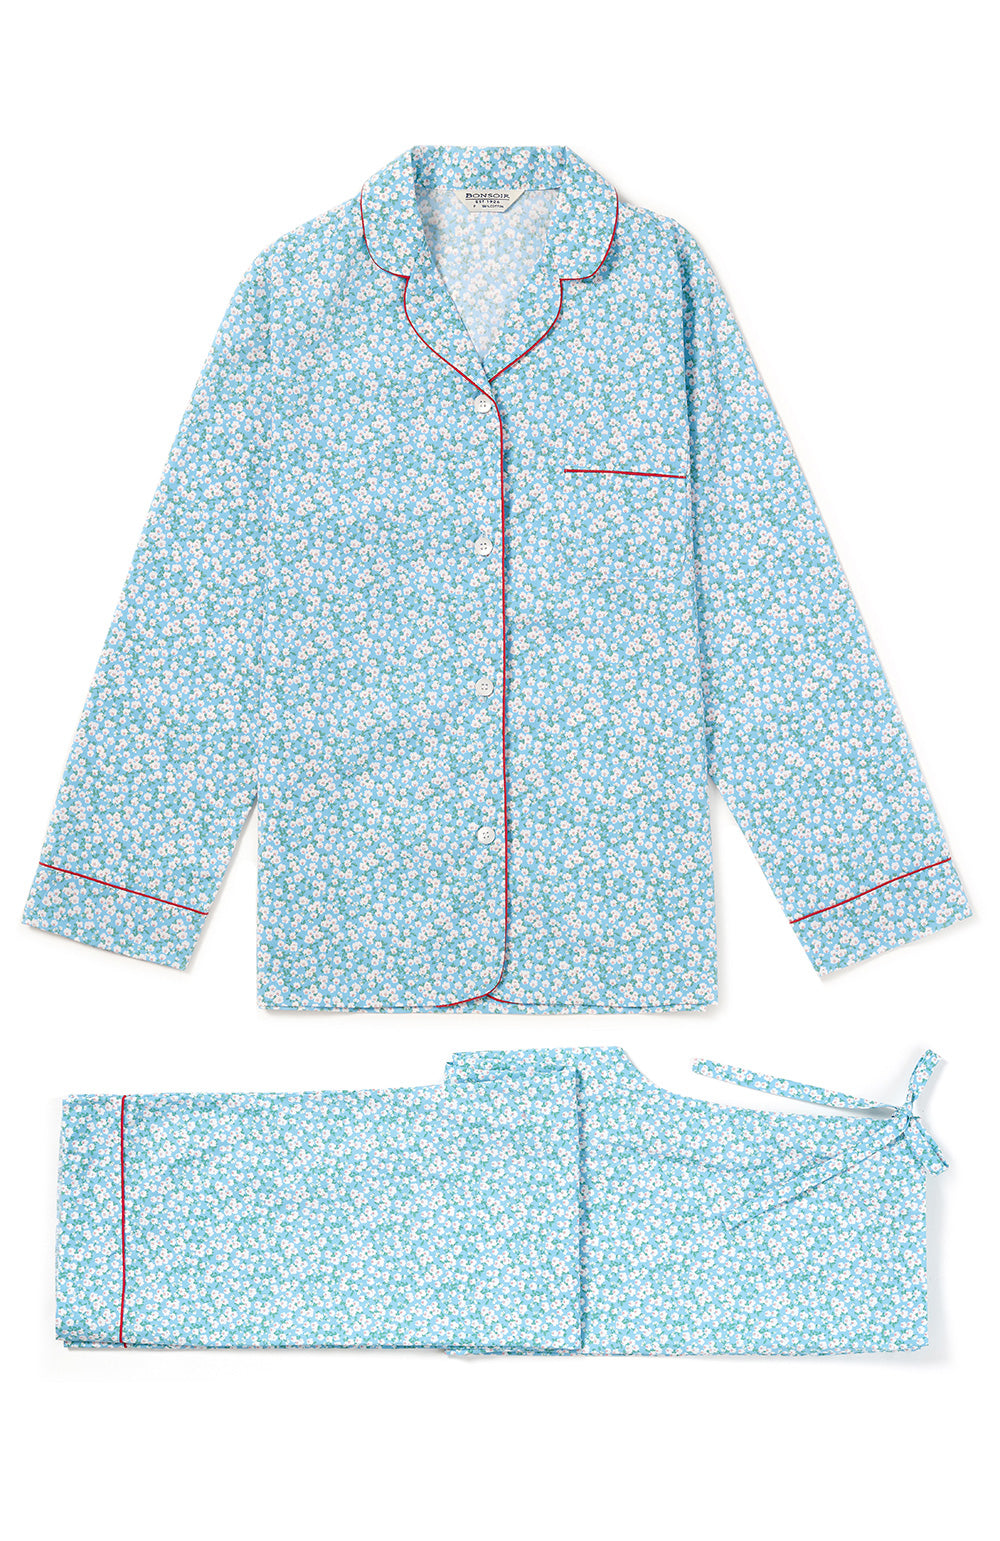 Classic Cotton Pale Blue Floral Pyjamas | Bonsoir of London